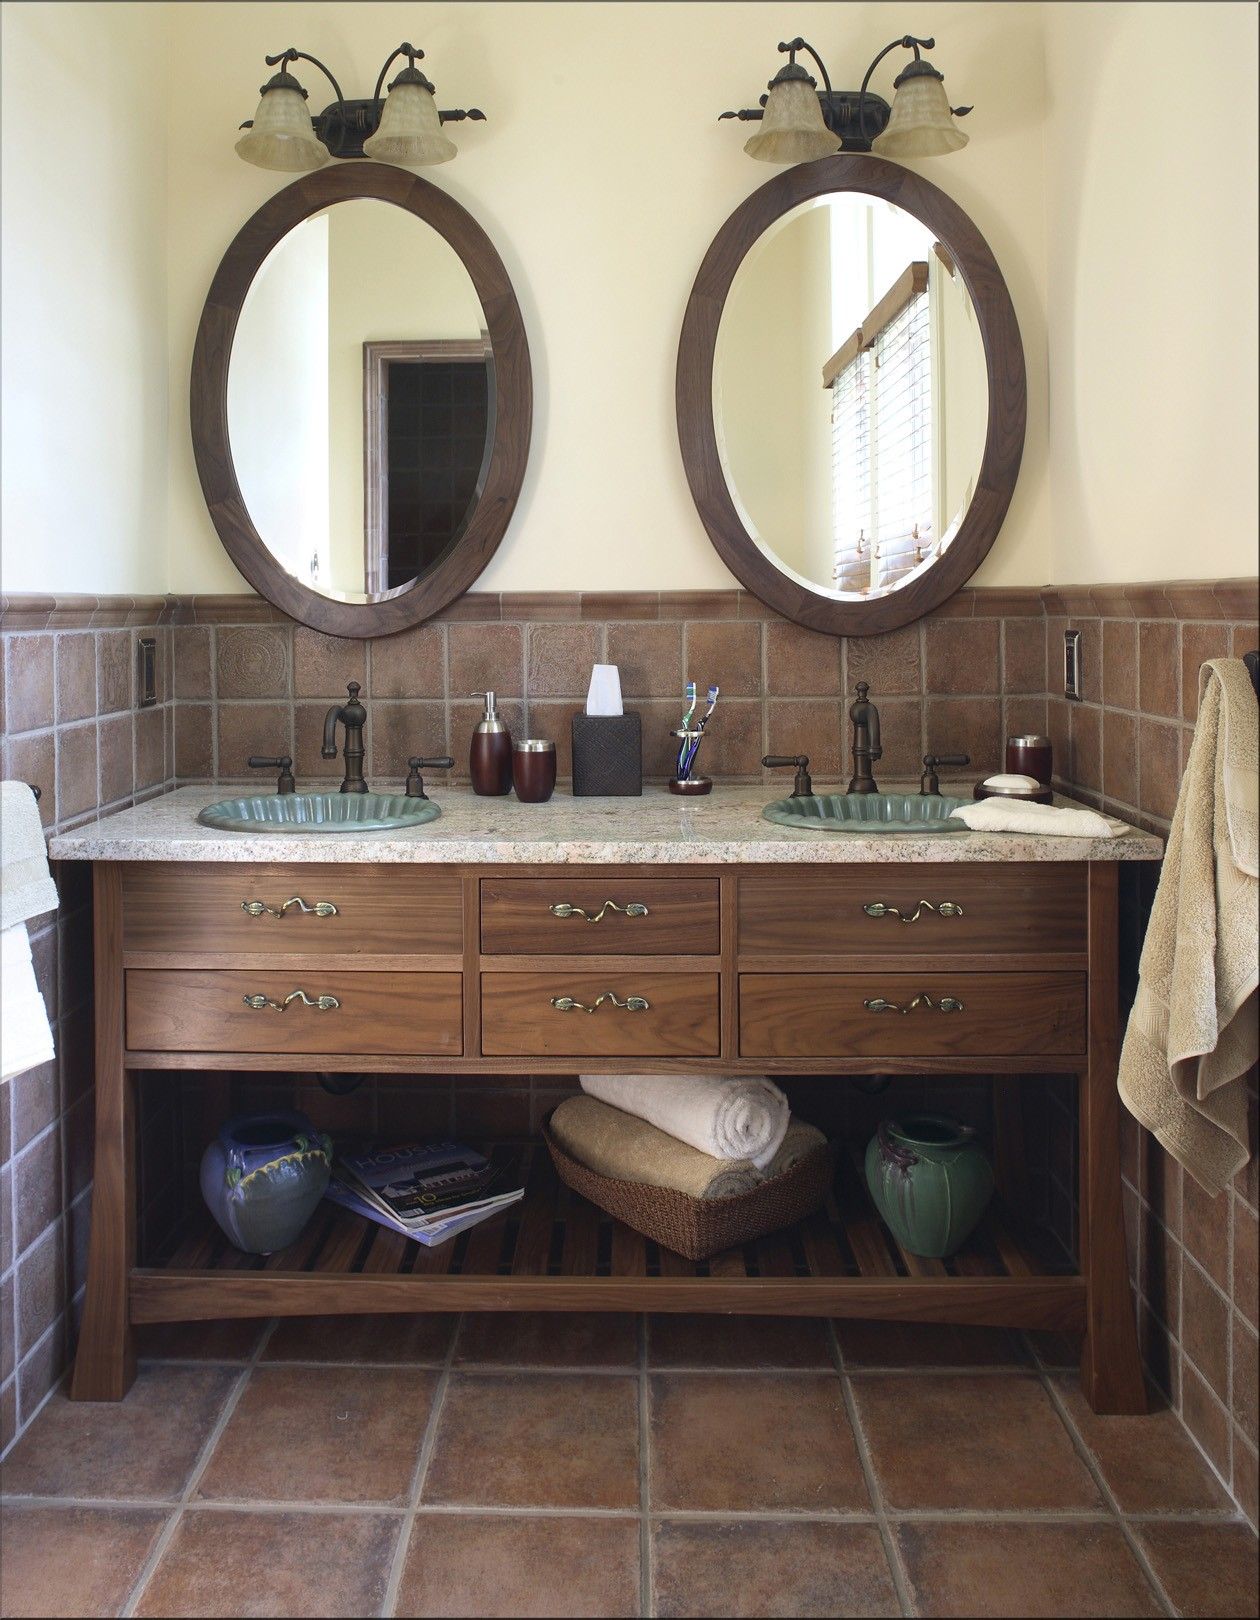 The Best Wall Mirror Design for Your Bathroom in Elegant Shape that You Must Have HomesFeed